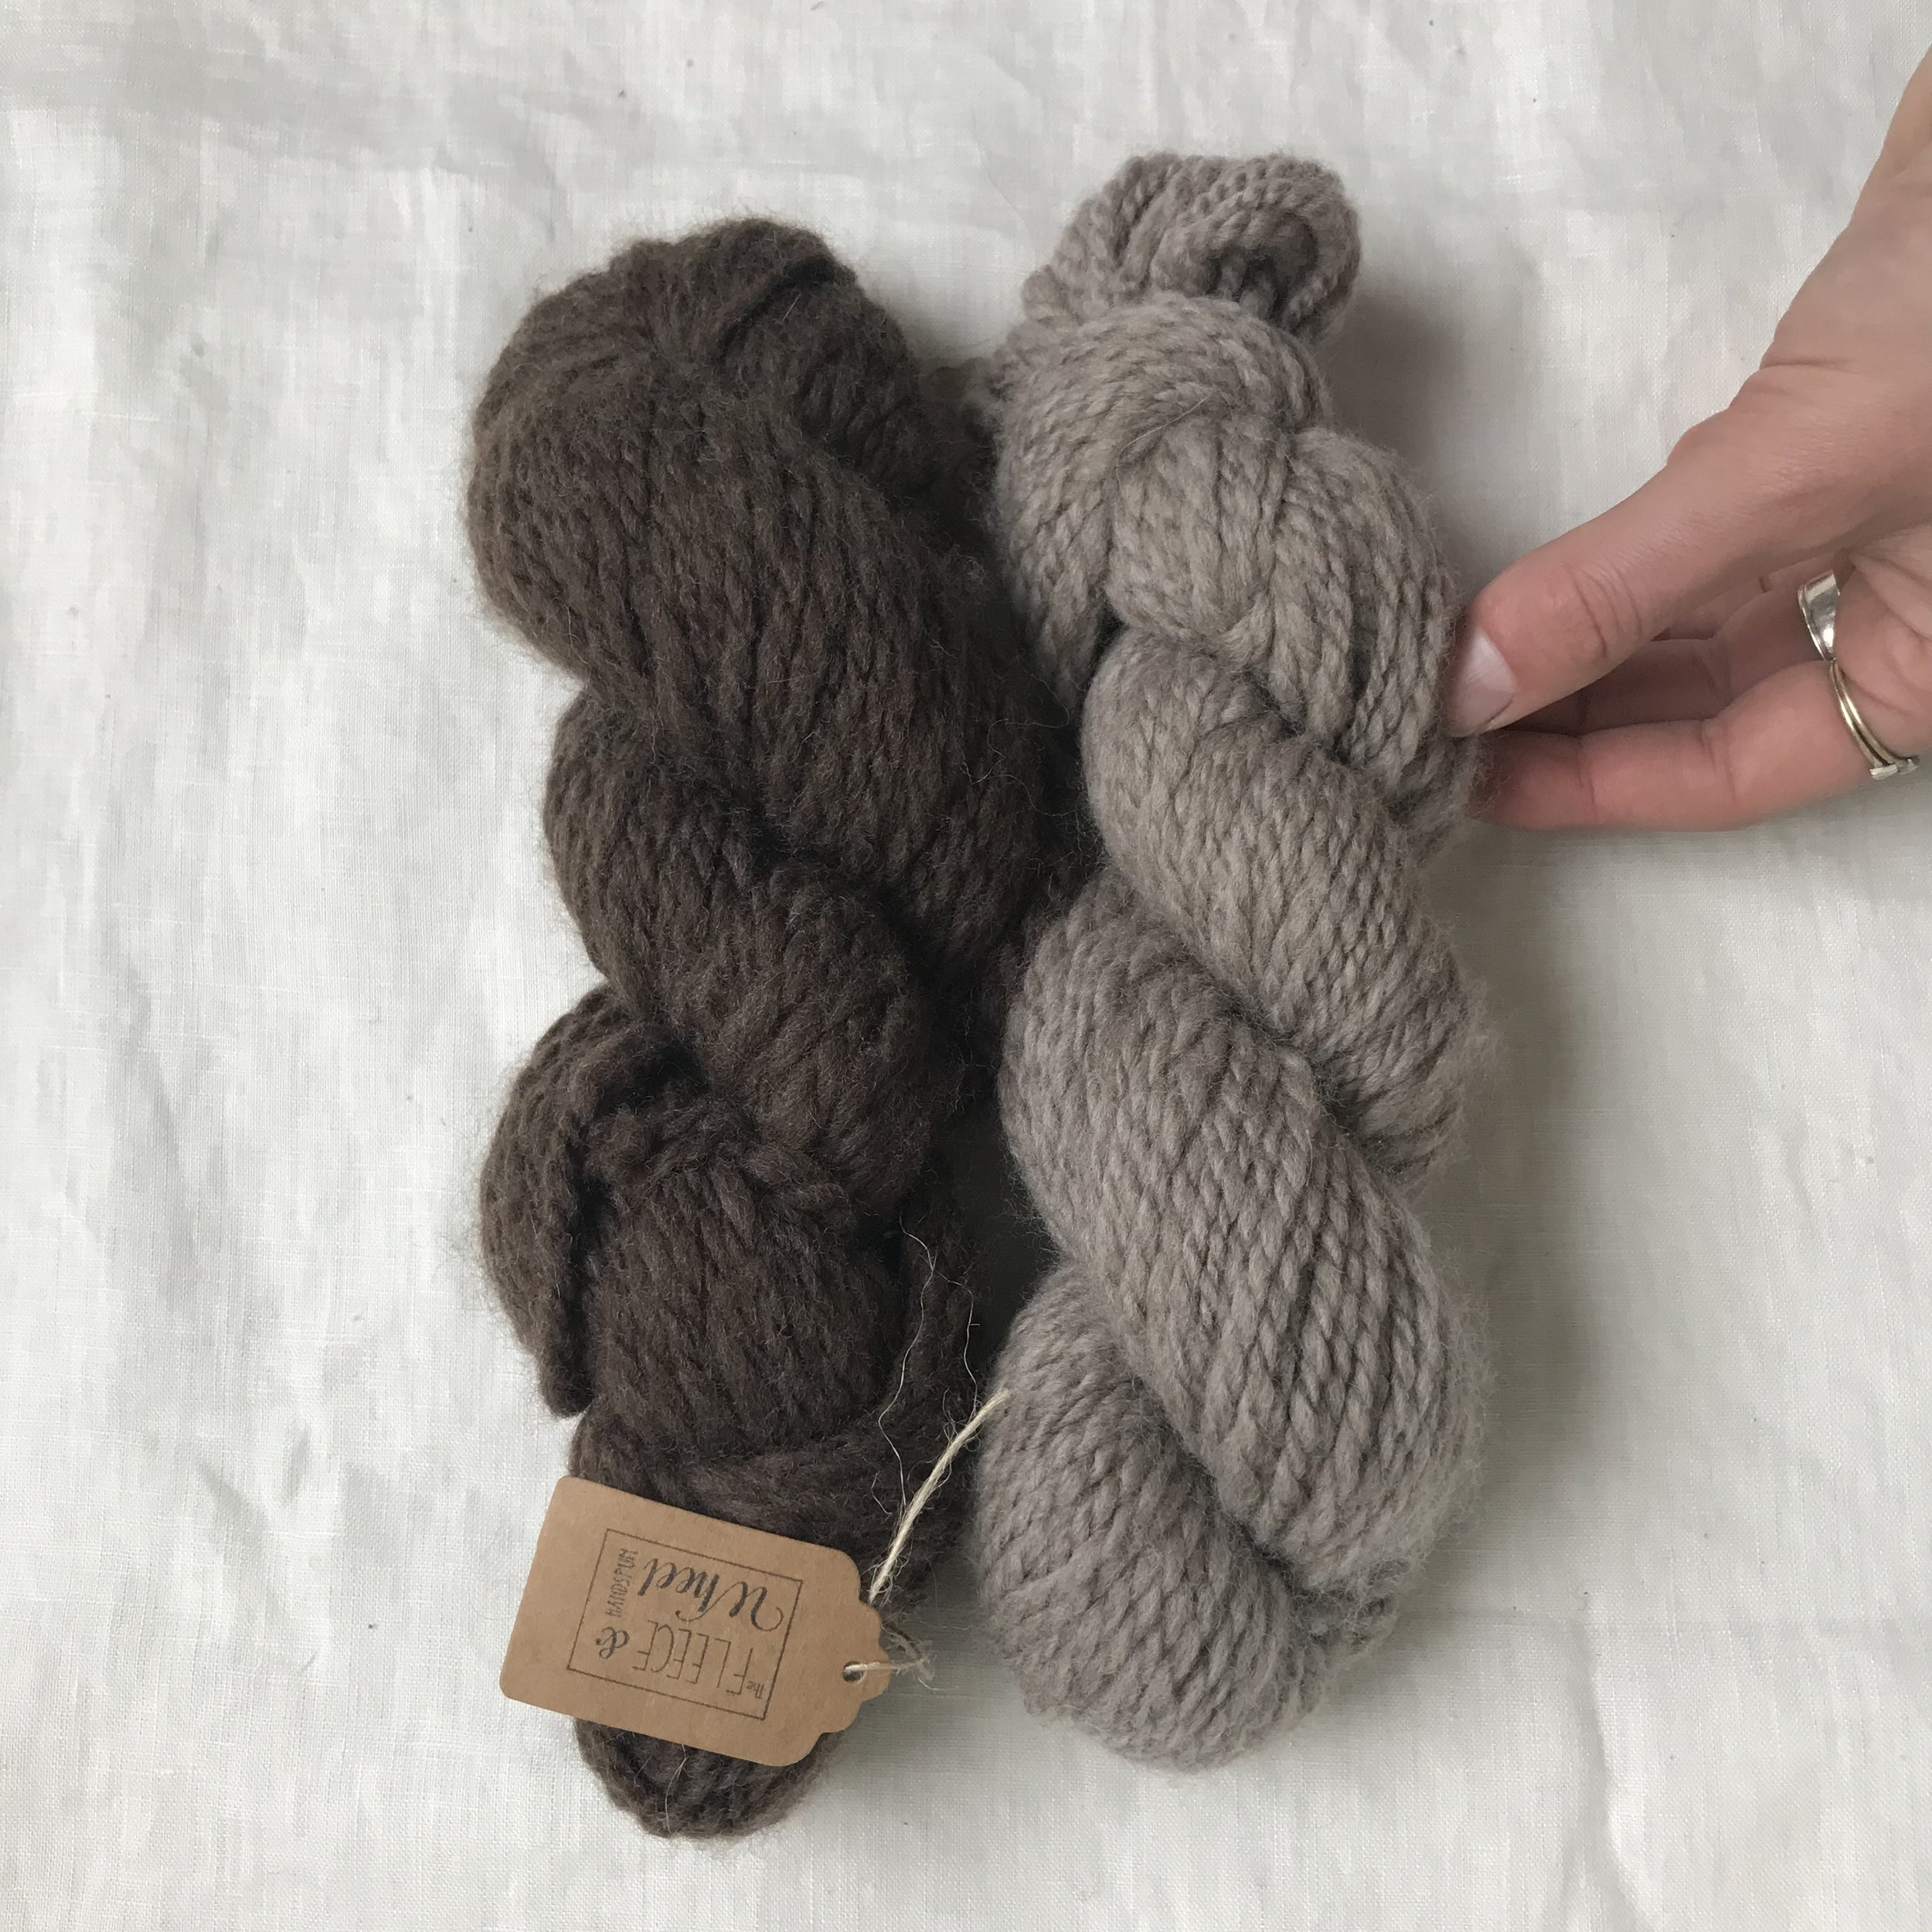 the loveliest gift from a podcast guest, Emma of Fleece and the Wheel, handspun